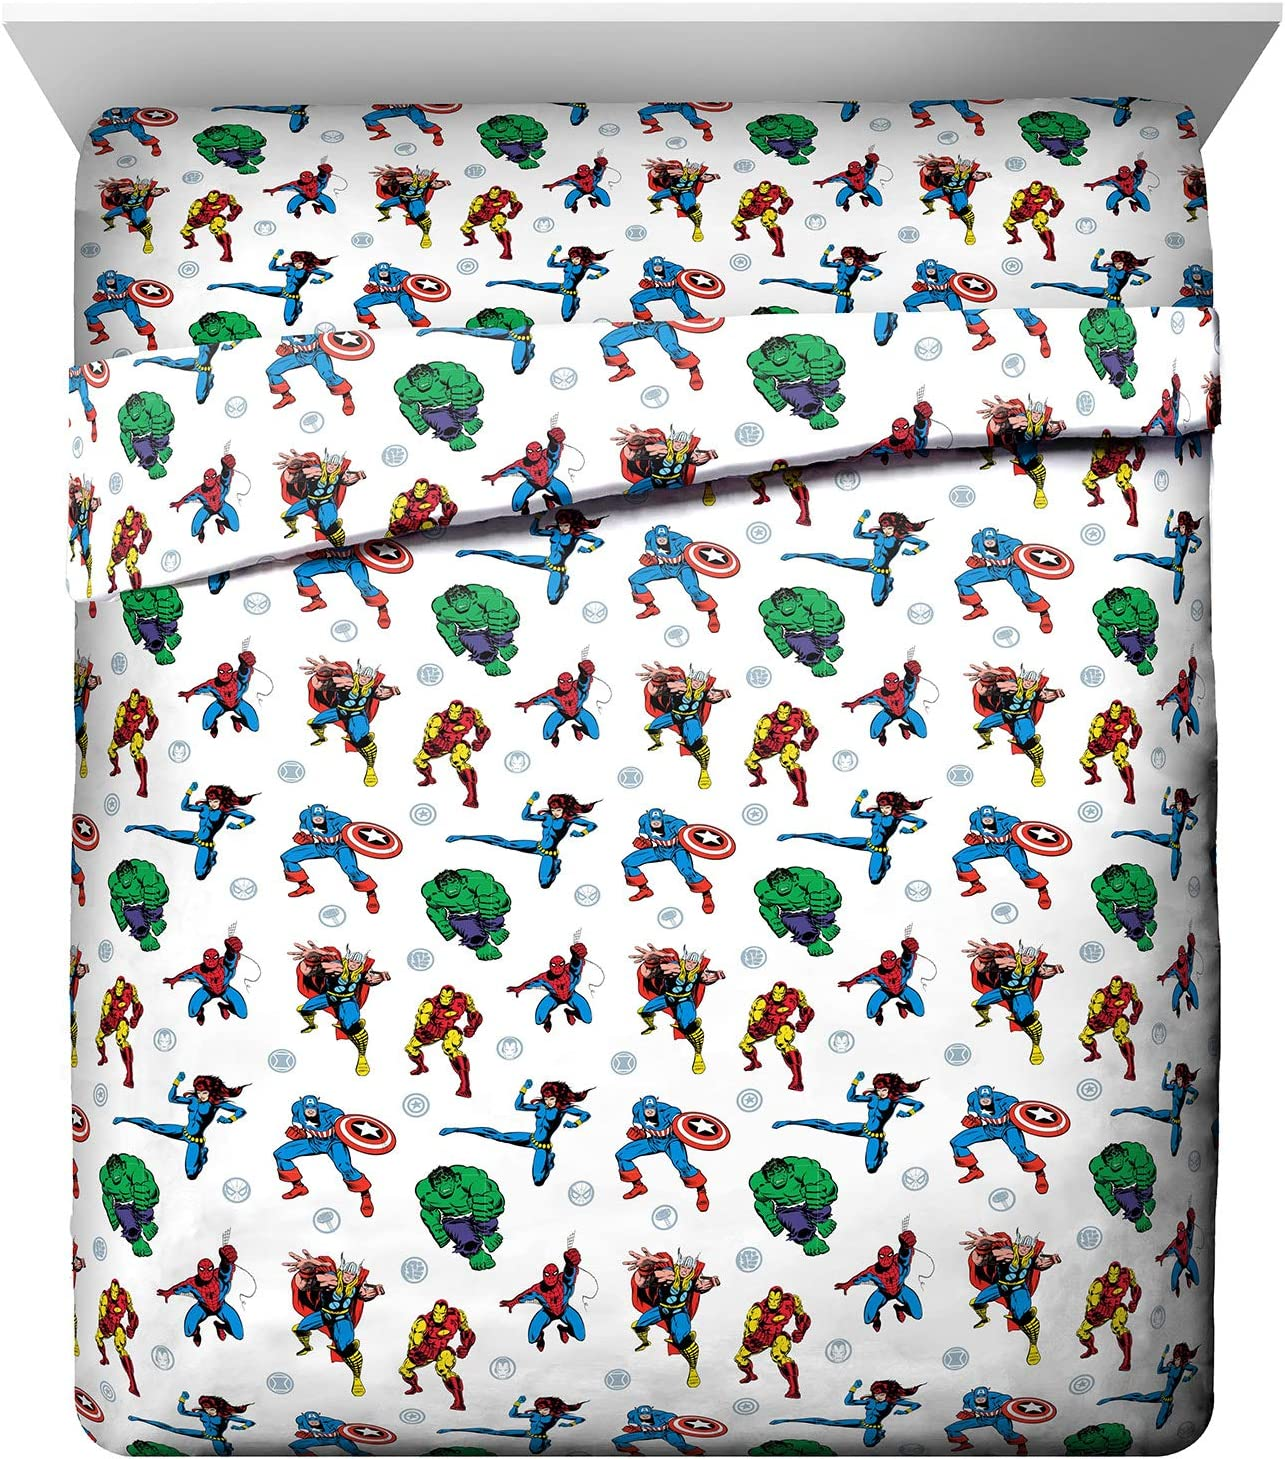 Marvel Avengers Fighting Team Queen Sheet Set - 4 Piece Set Super Soft and Cozy Kid's Bedding - Fade Resistant Microfiber Sheets (Official Marvel Product)